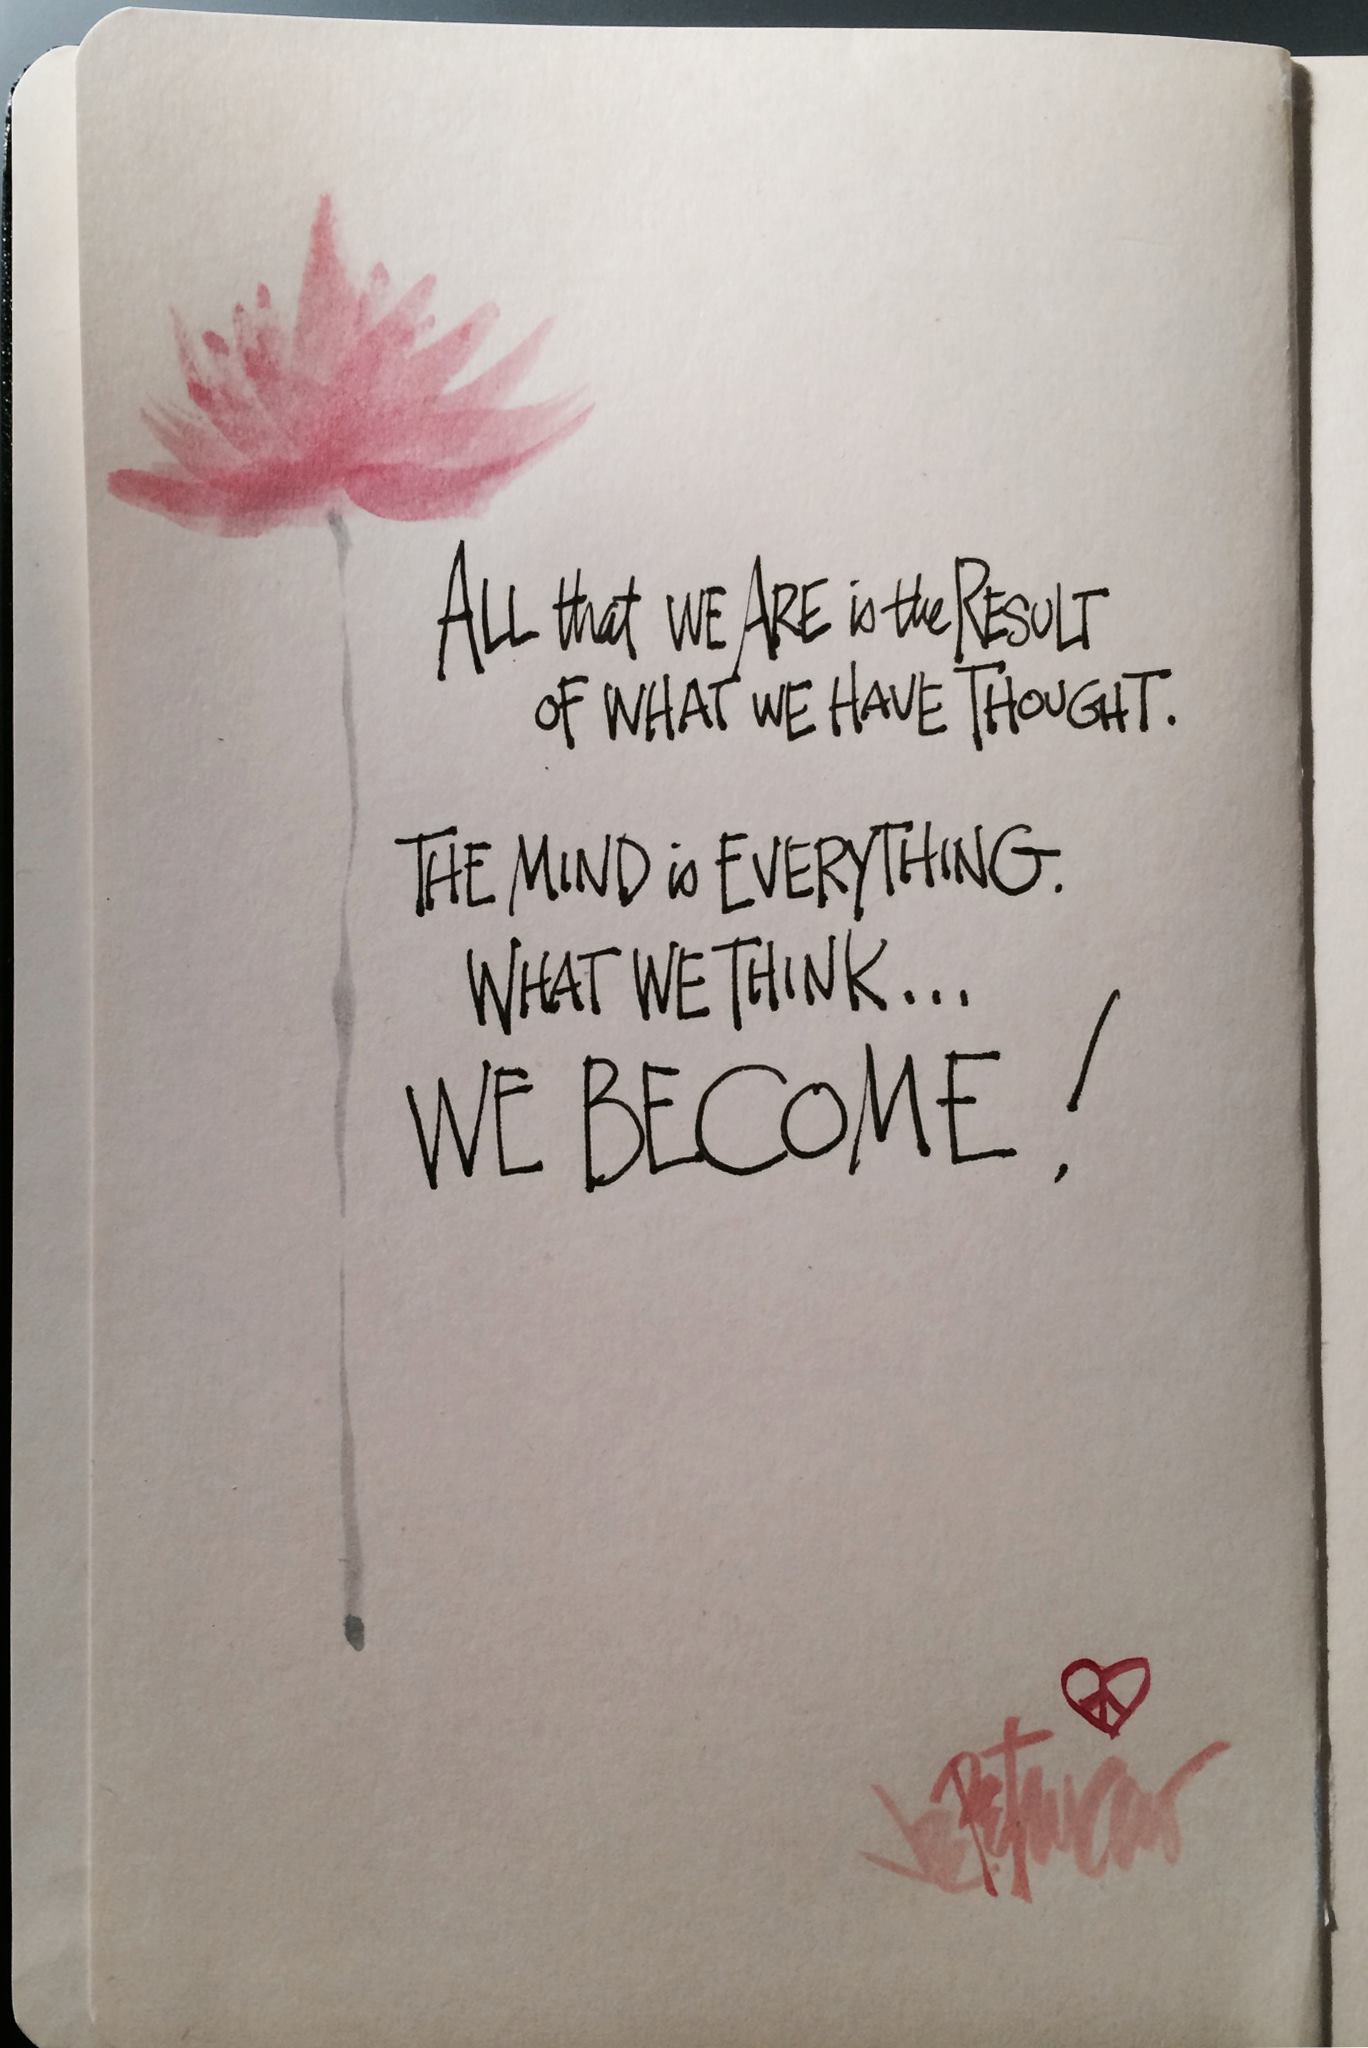 What we Think…..